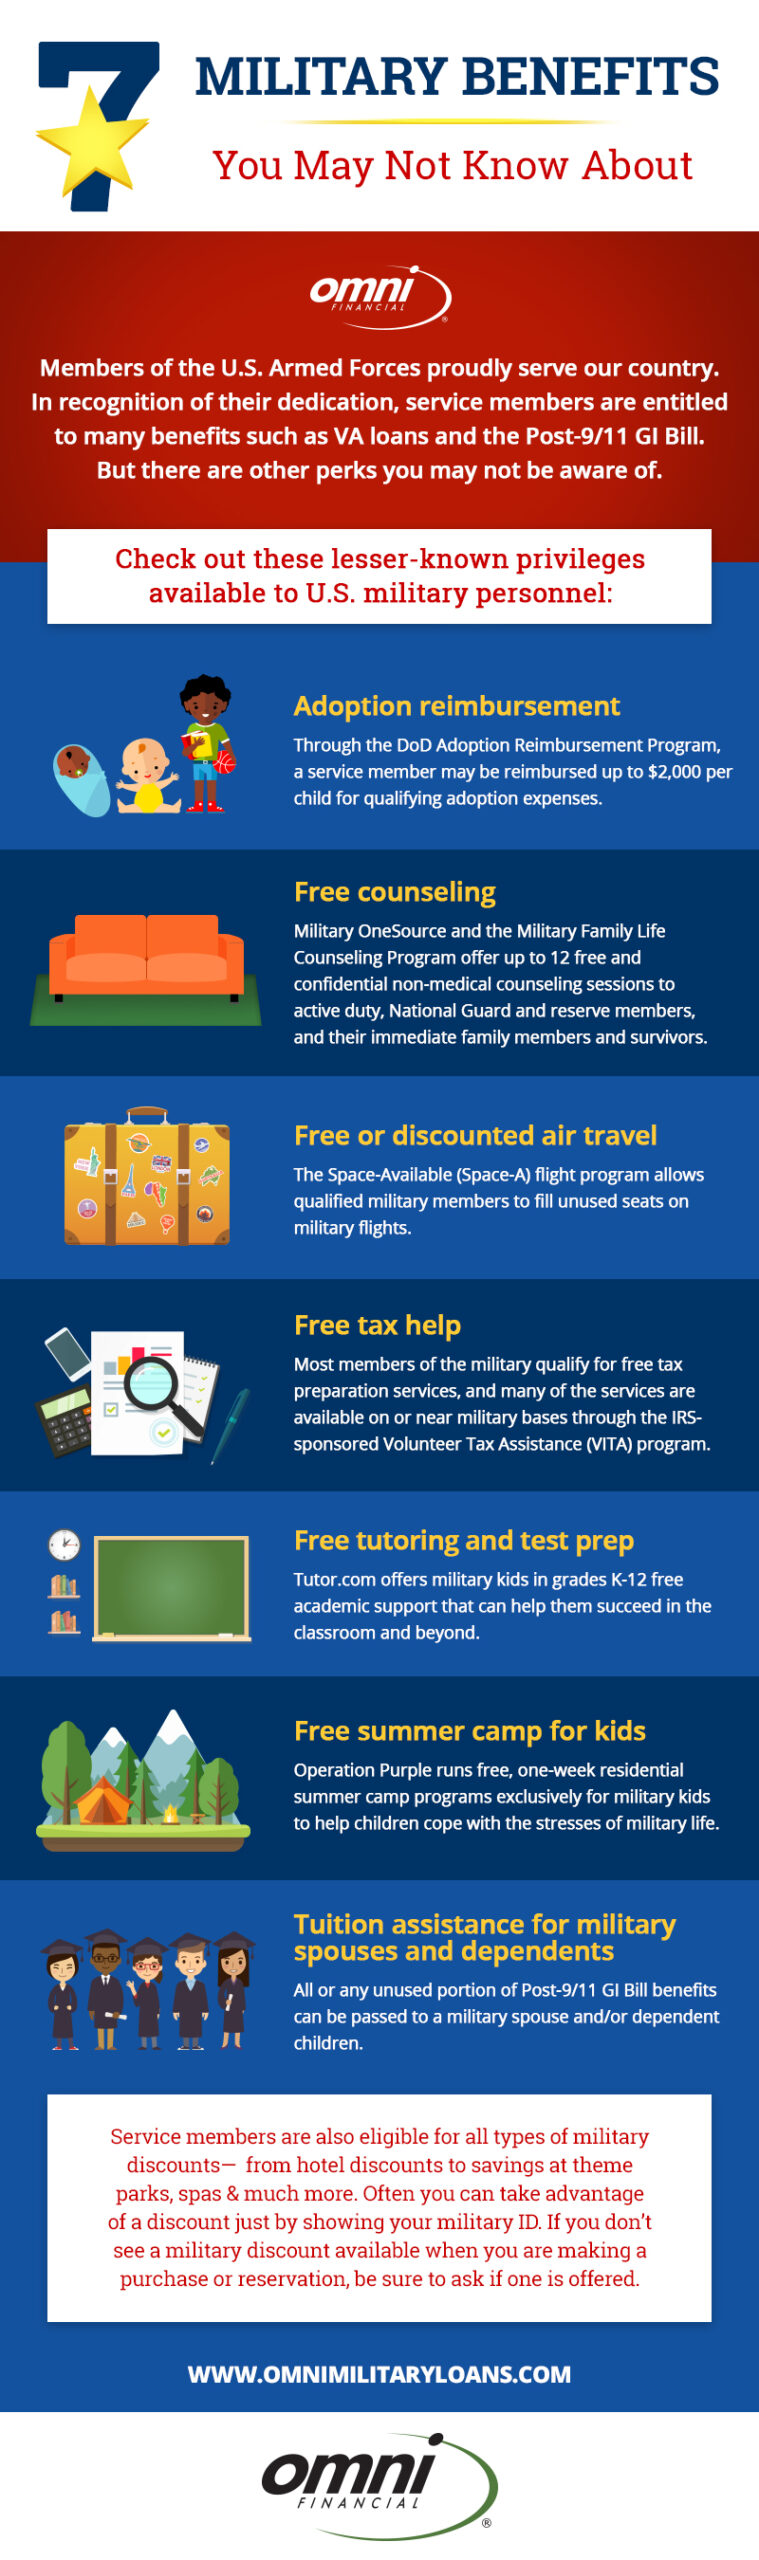 7 Military Benefits You May Not Know About Infographic